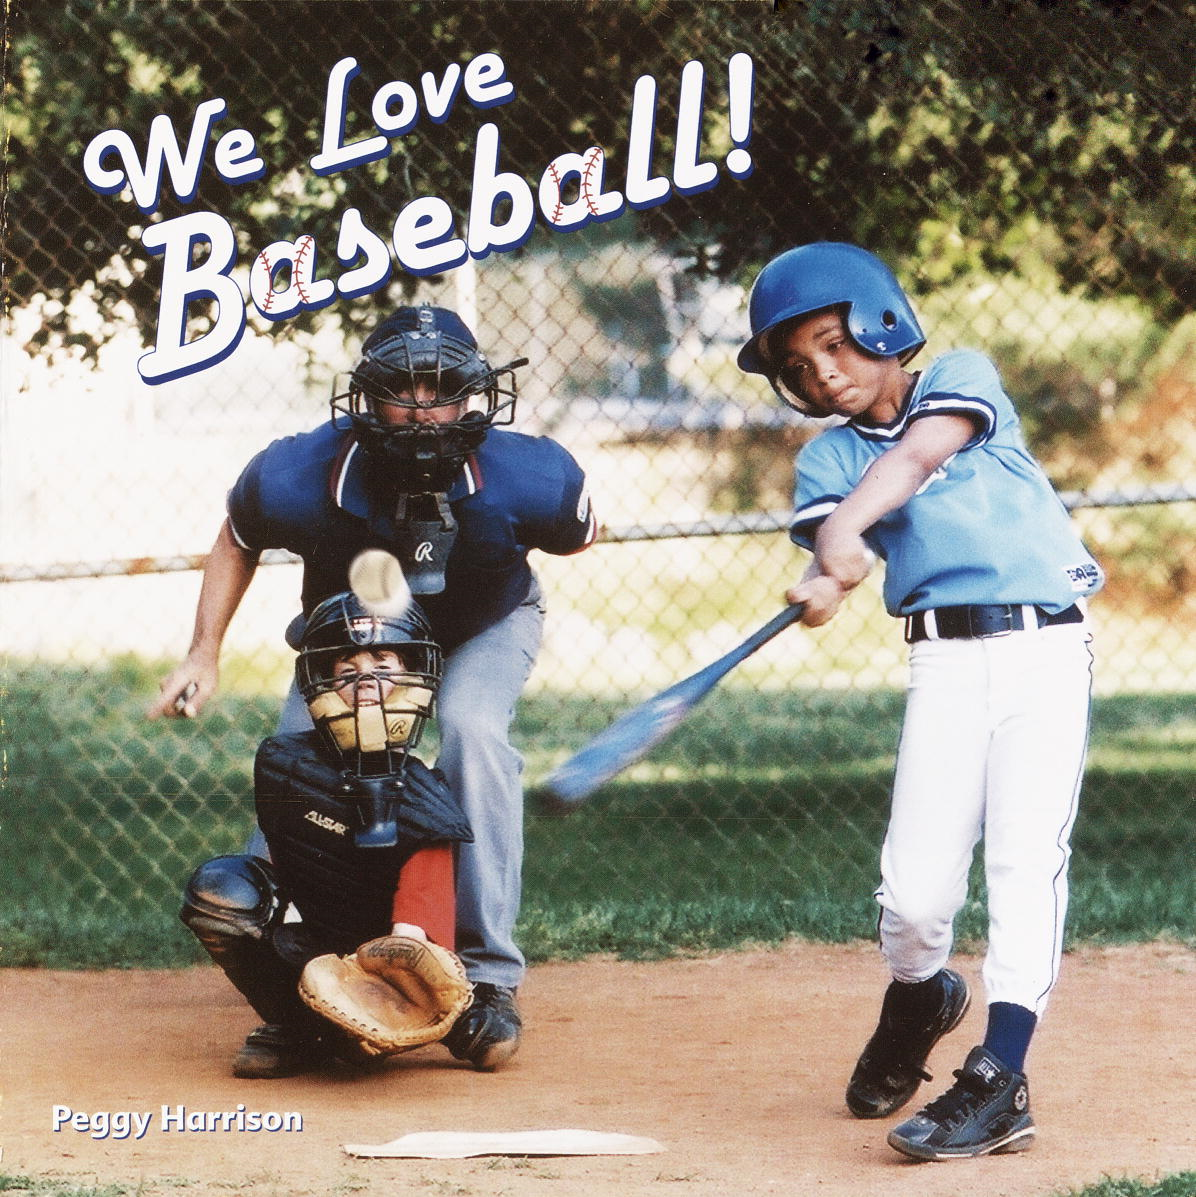 Cover Image: We Love Baseball!